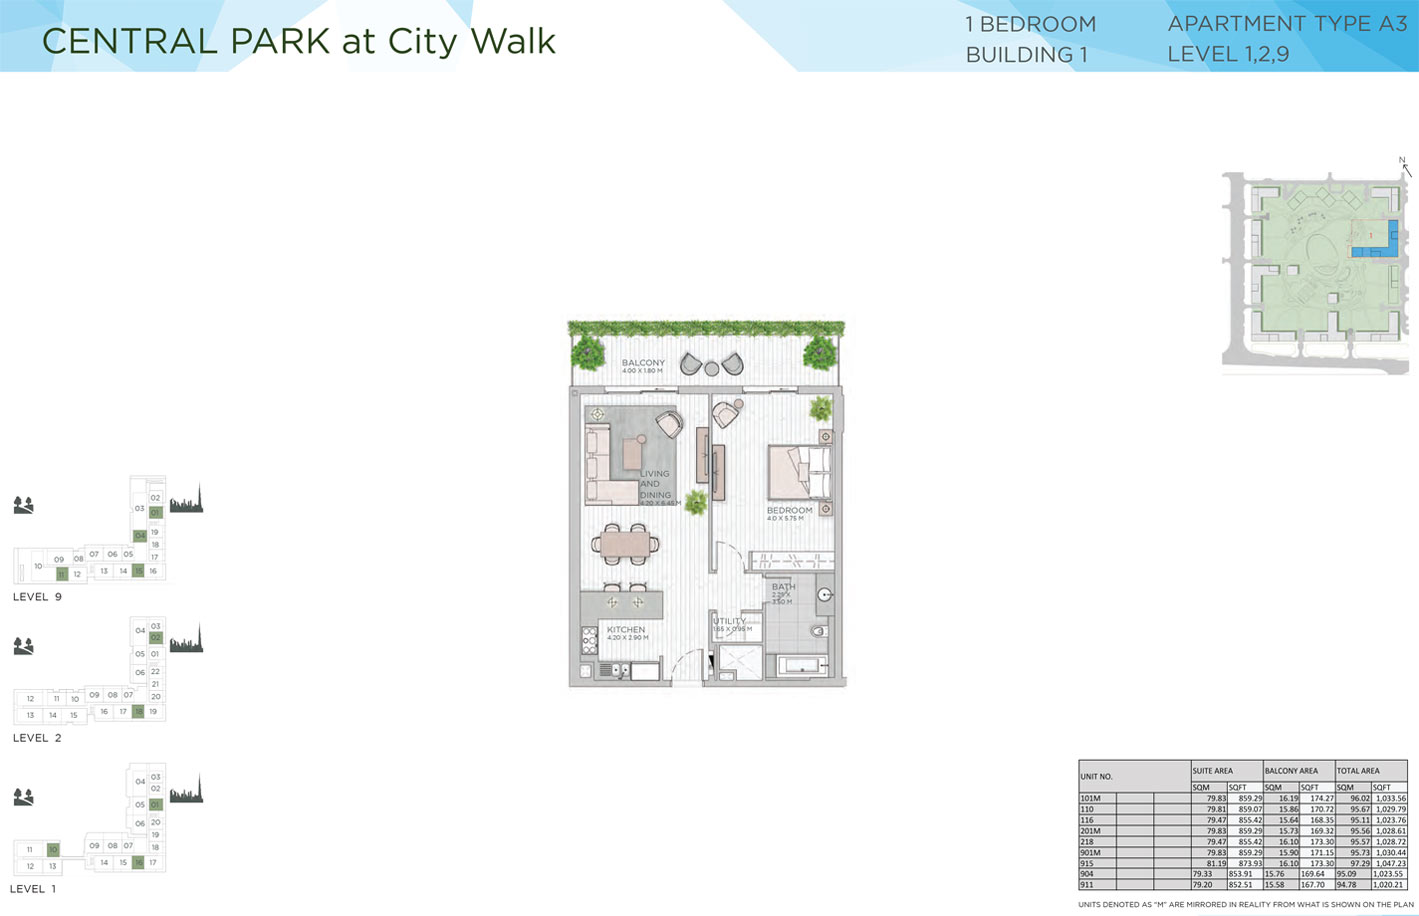 1 Bedroom Building 1 Level 1-2-9 Type A3 Size 1020 -1047 sqft